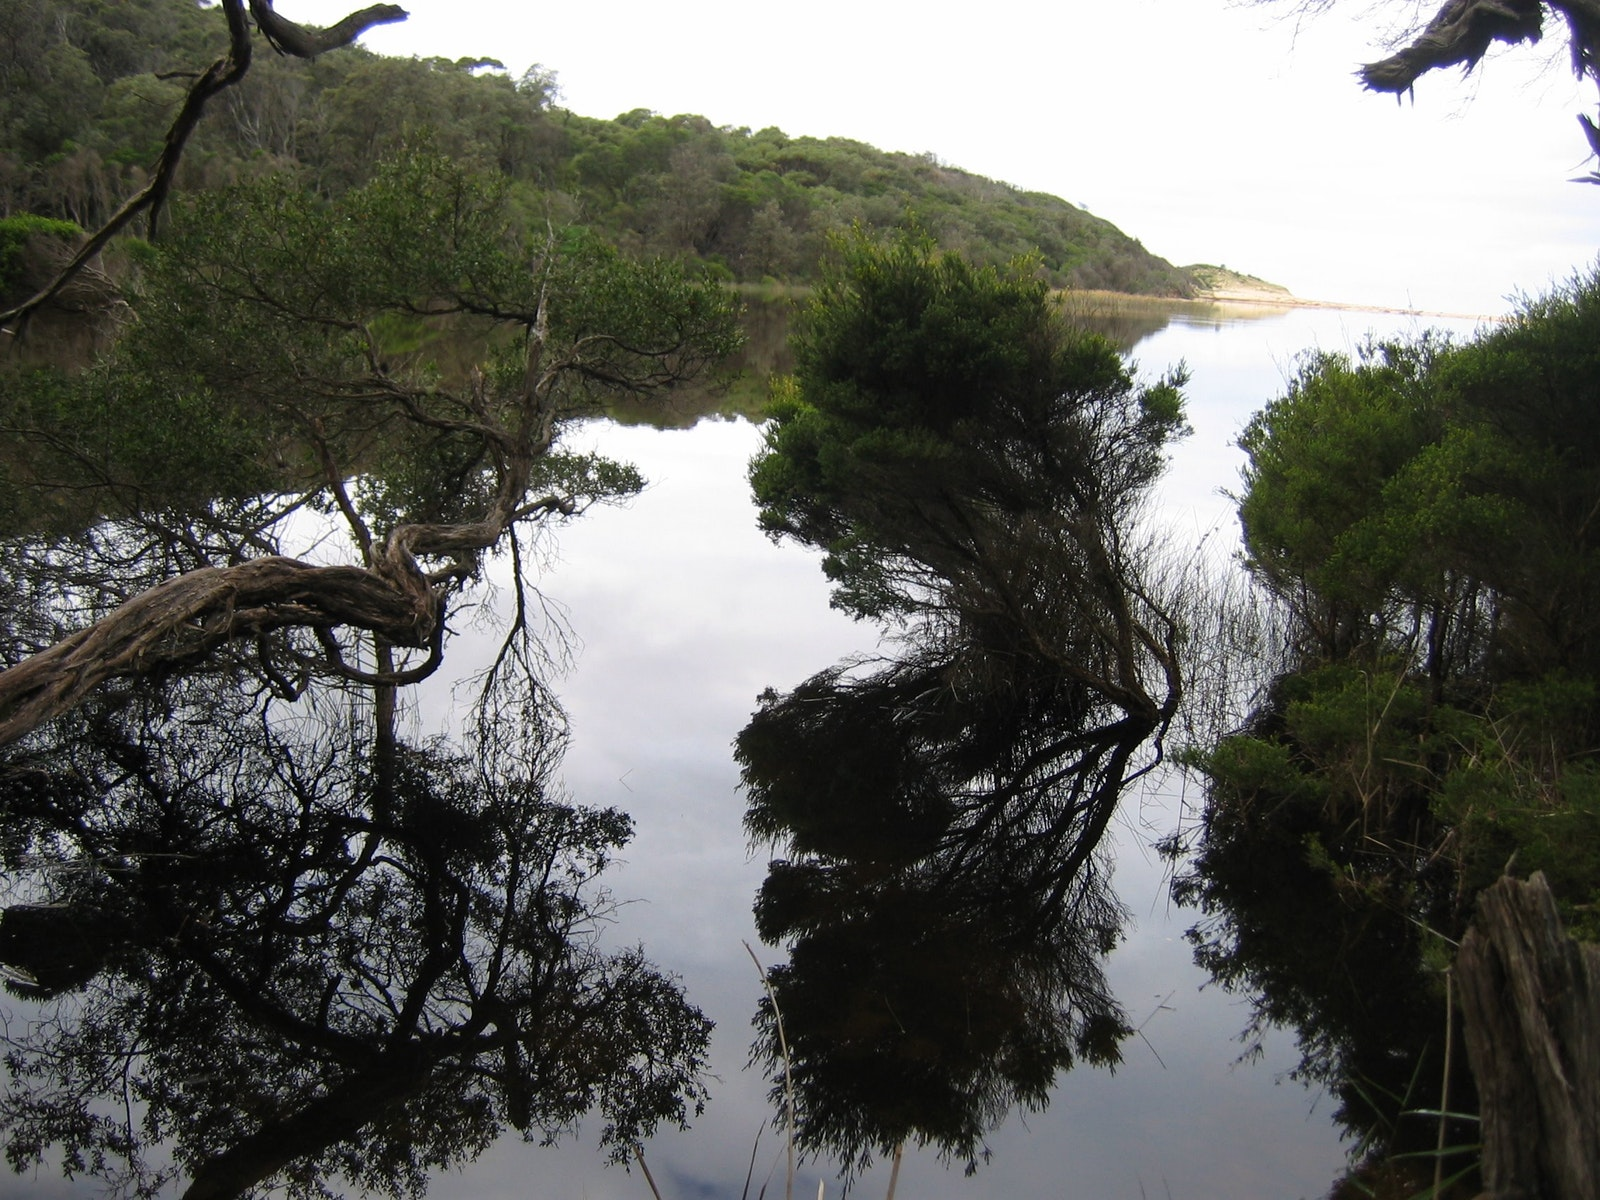 Refections in water near Point Hicks, Croajingolong